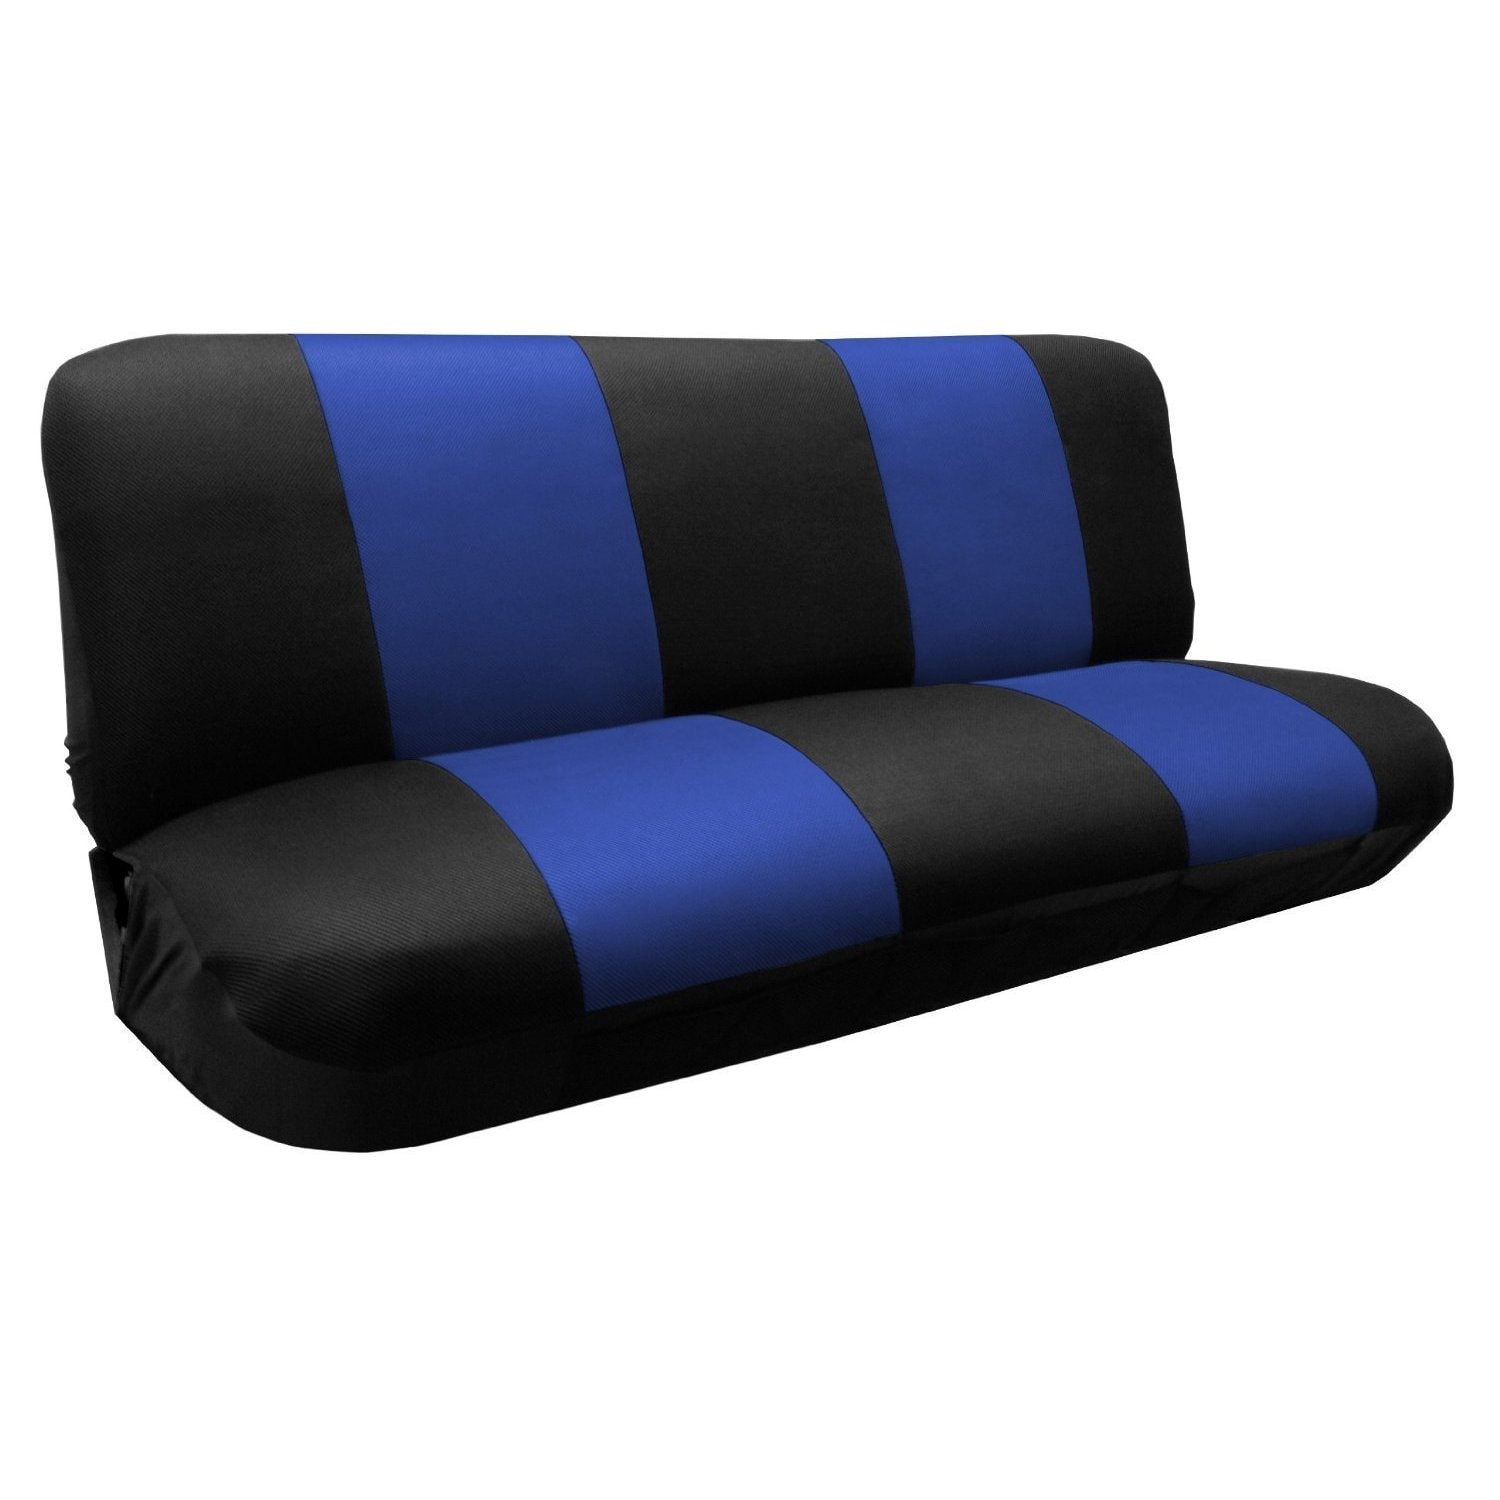 Unique Industries Premier Knit Mesh Bench Seat Cover SUV ...